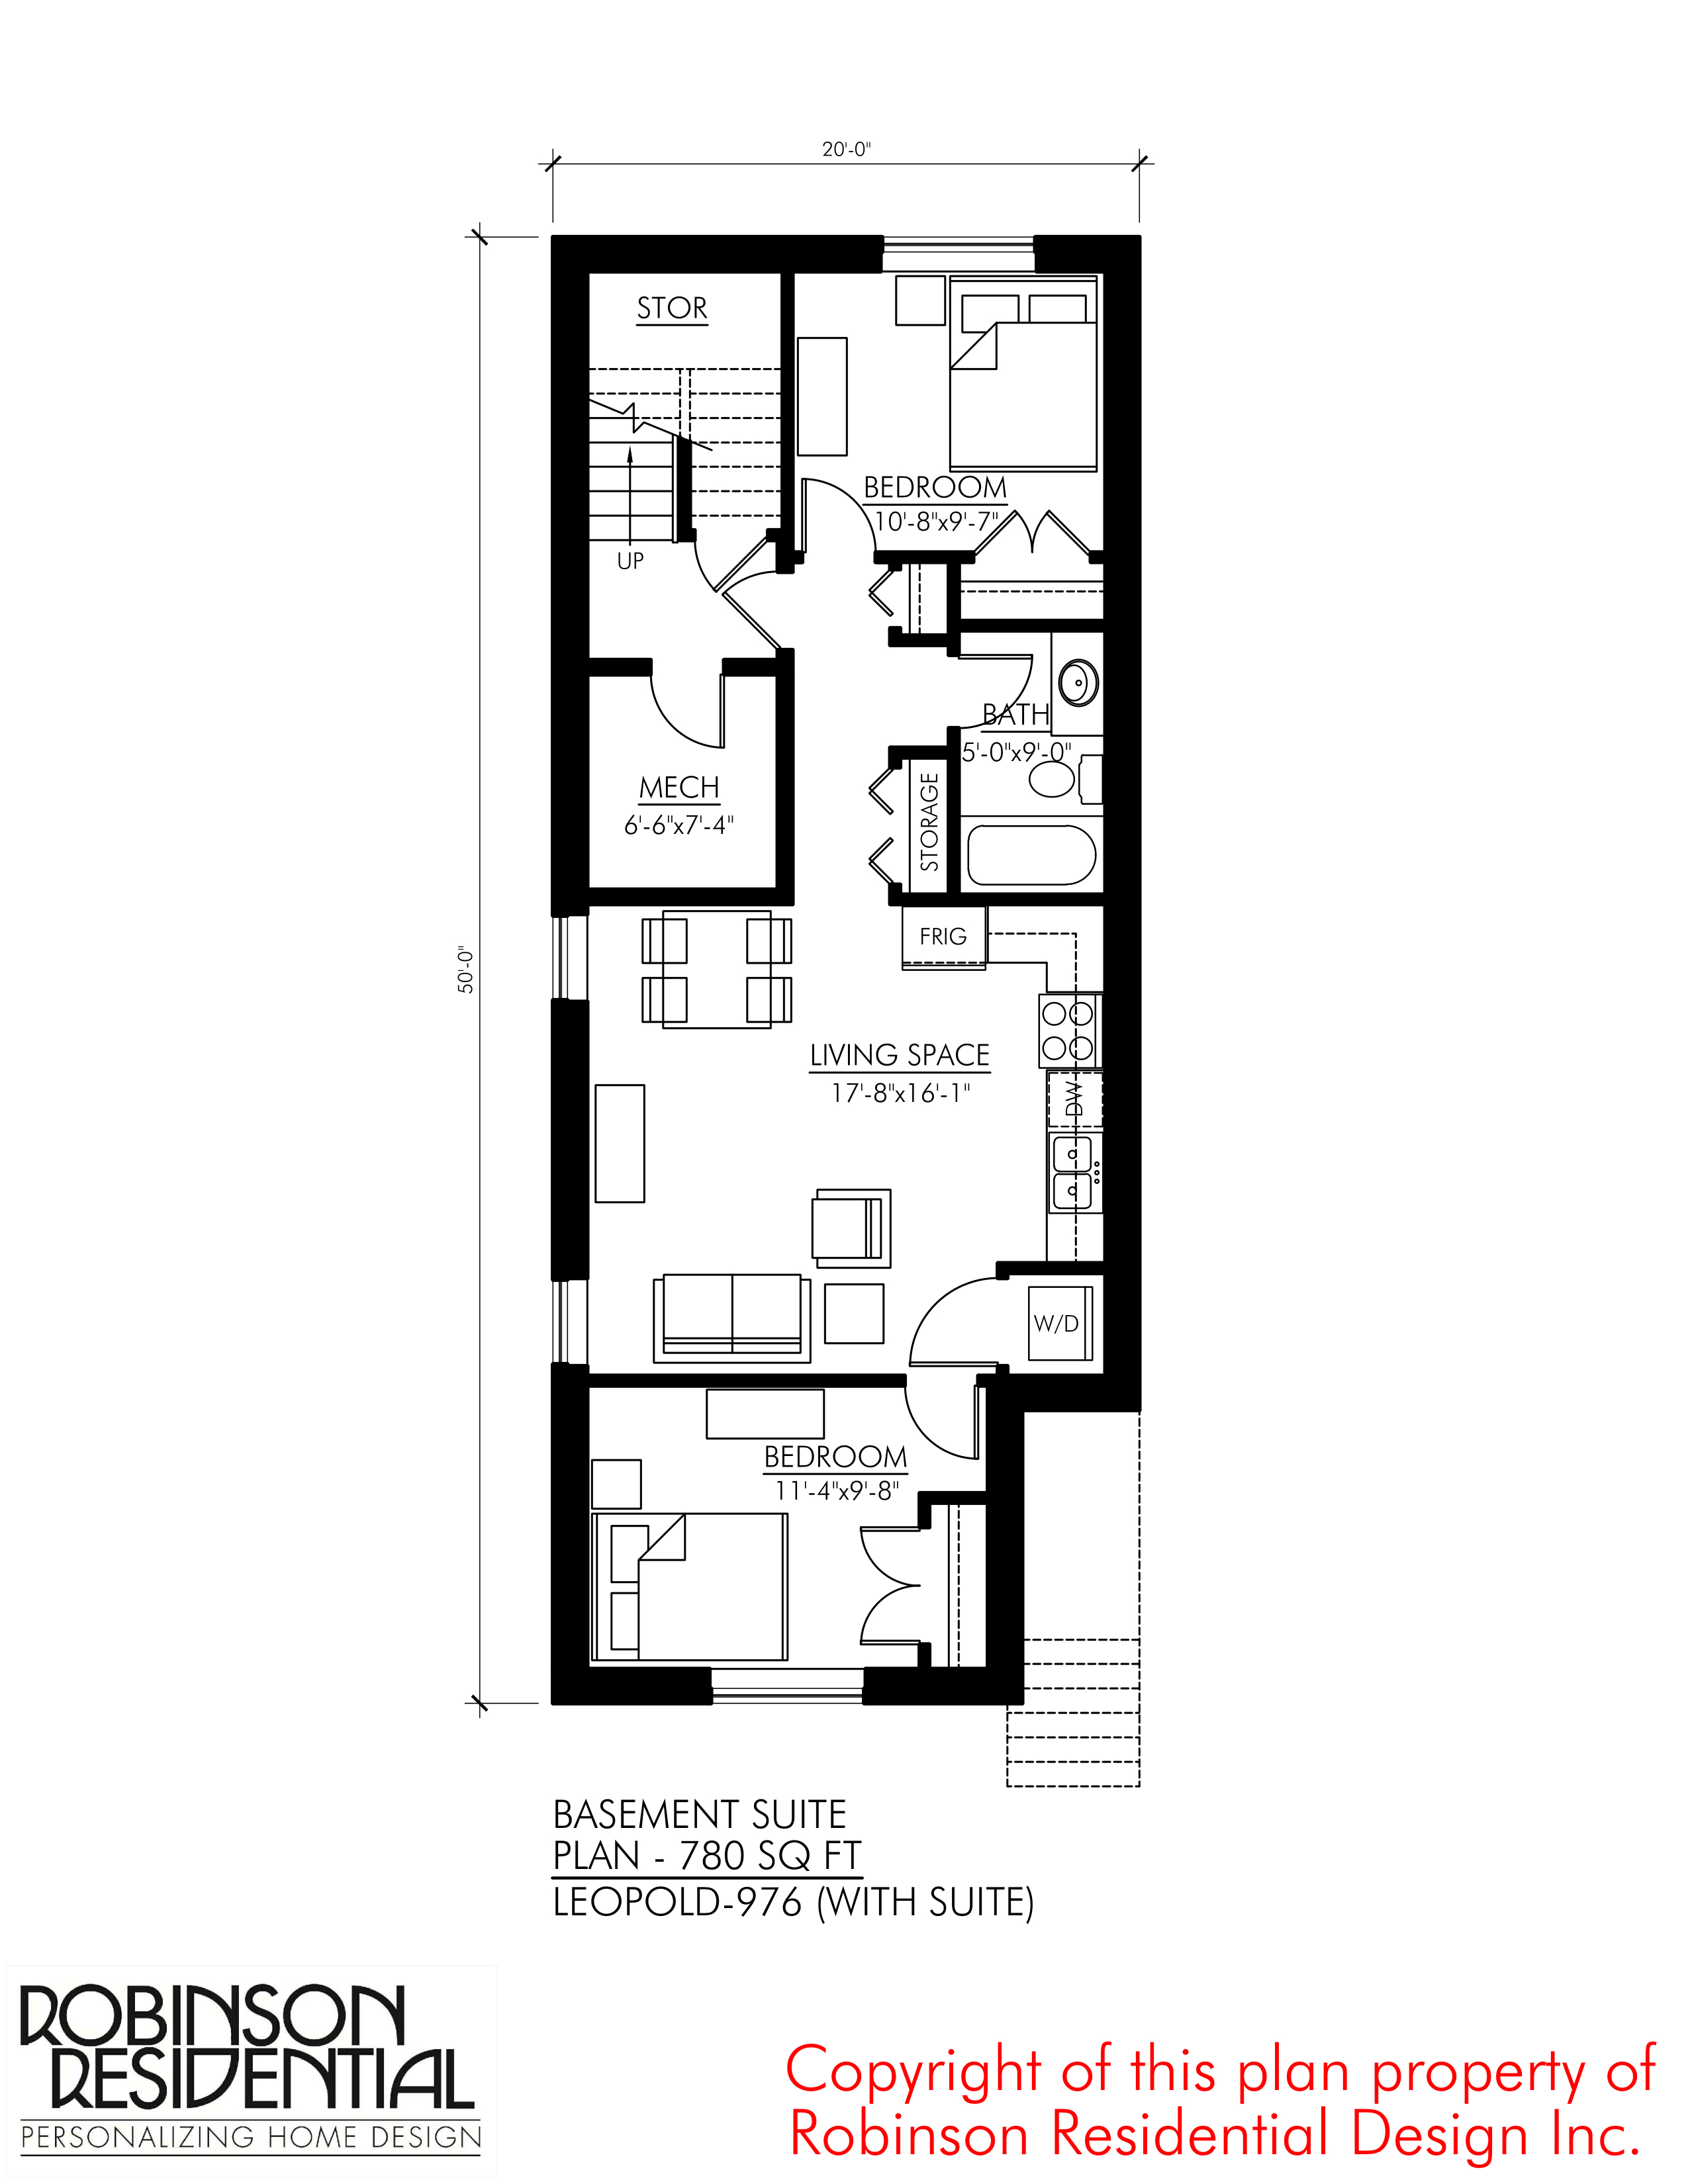 Craftsman Leopold 976 With Suite Robinson Plans